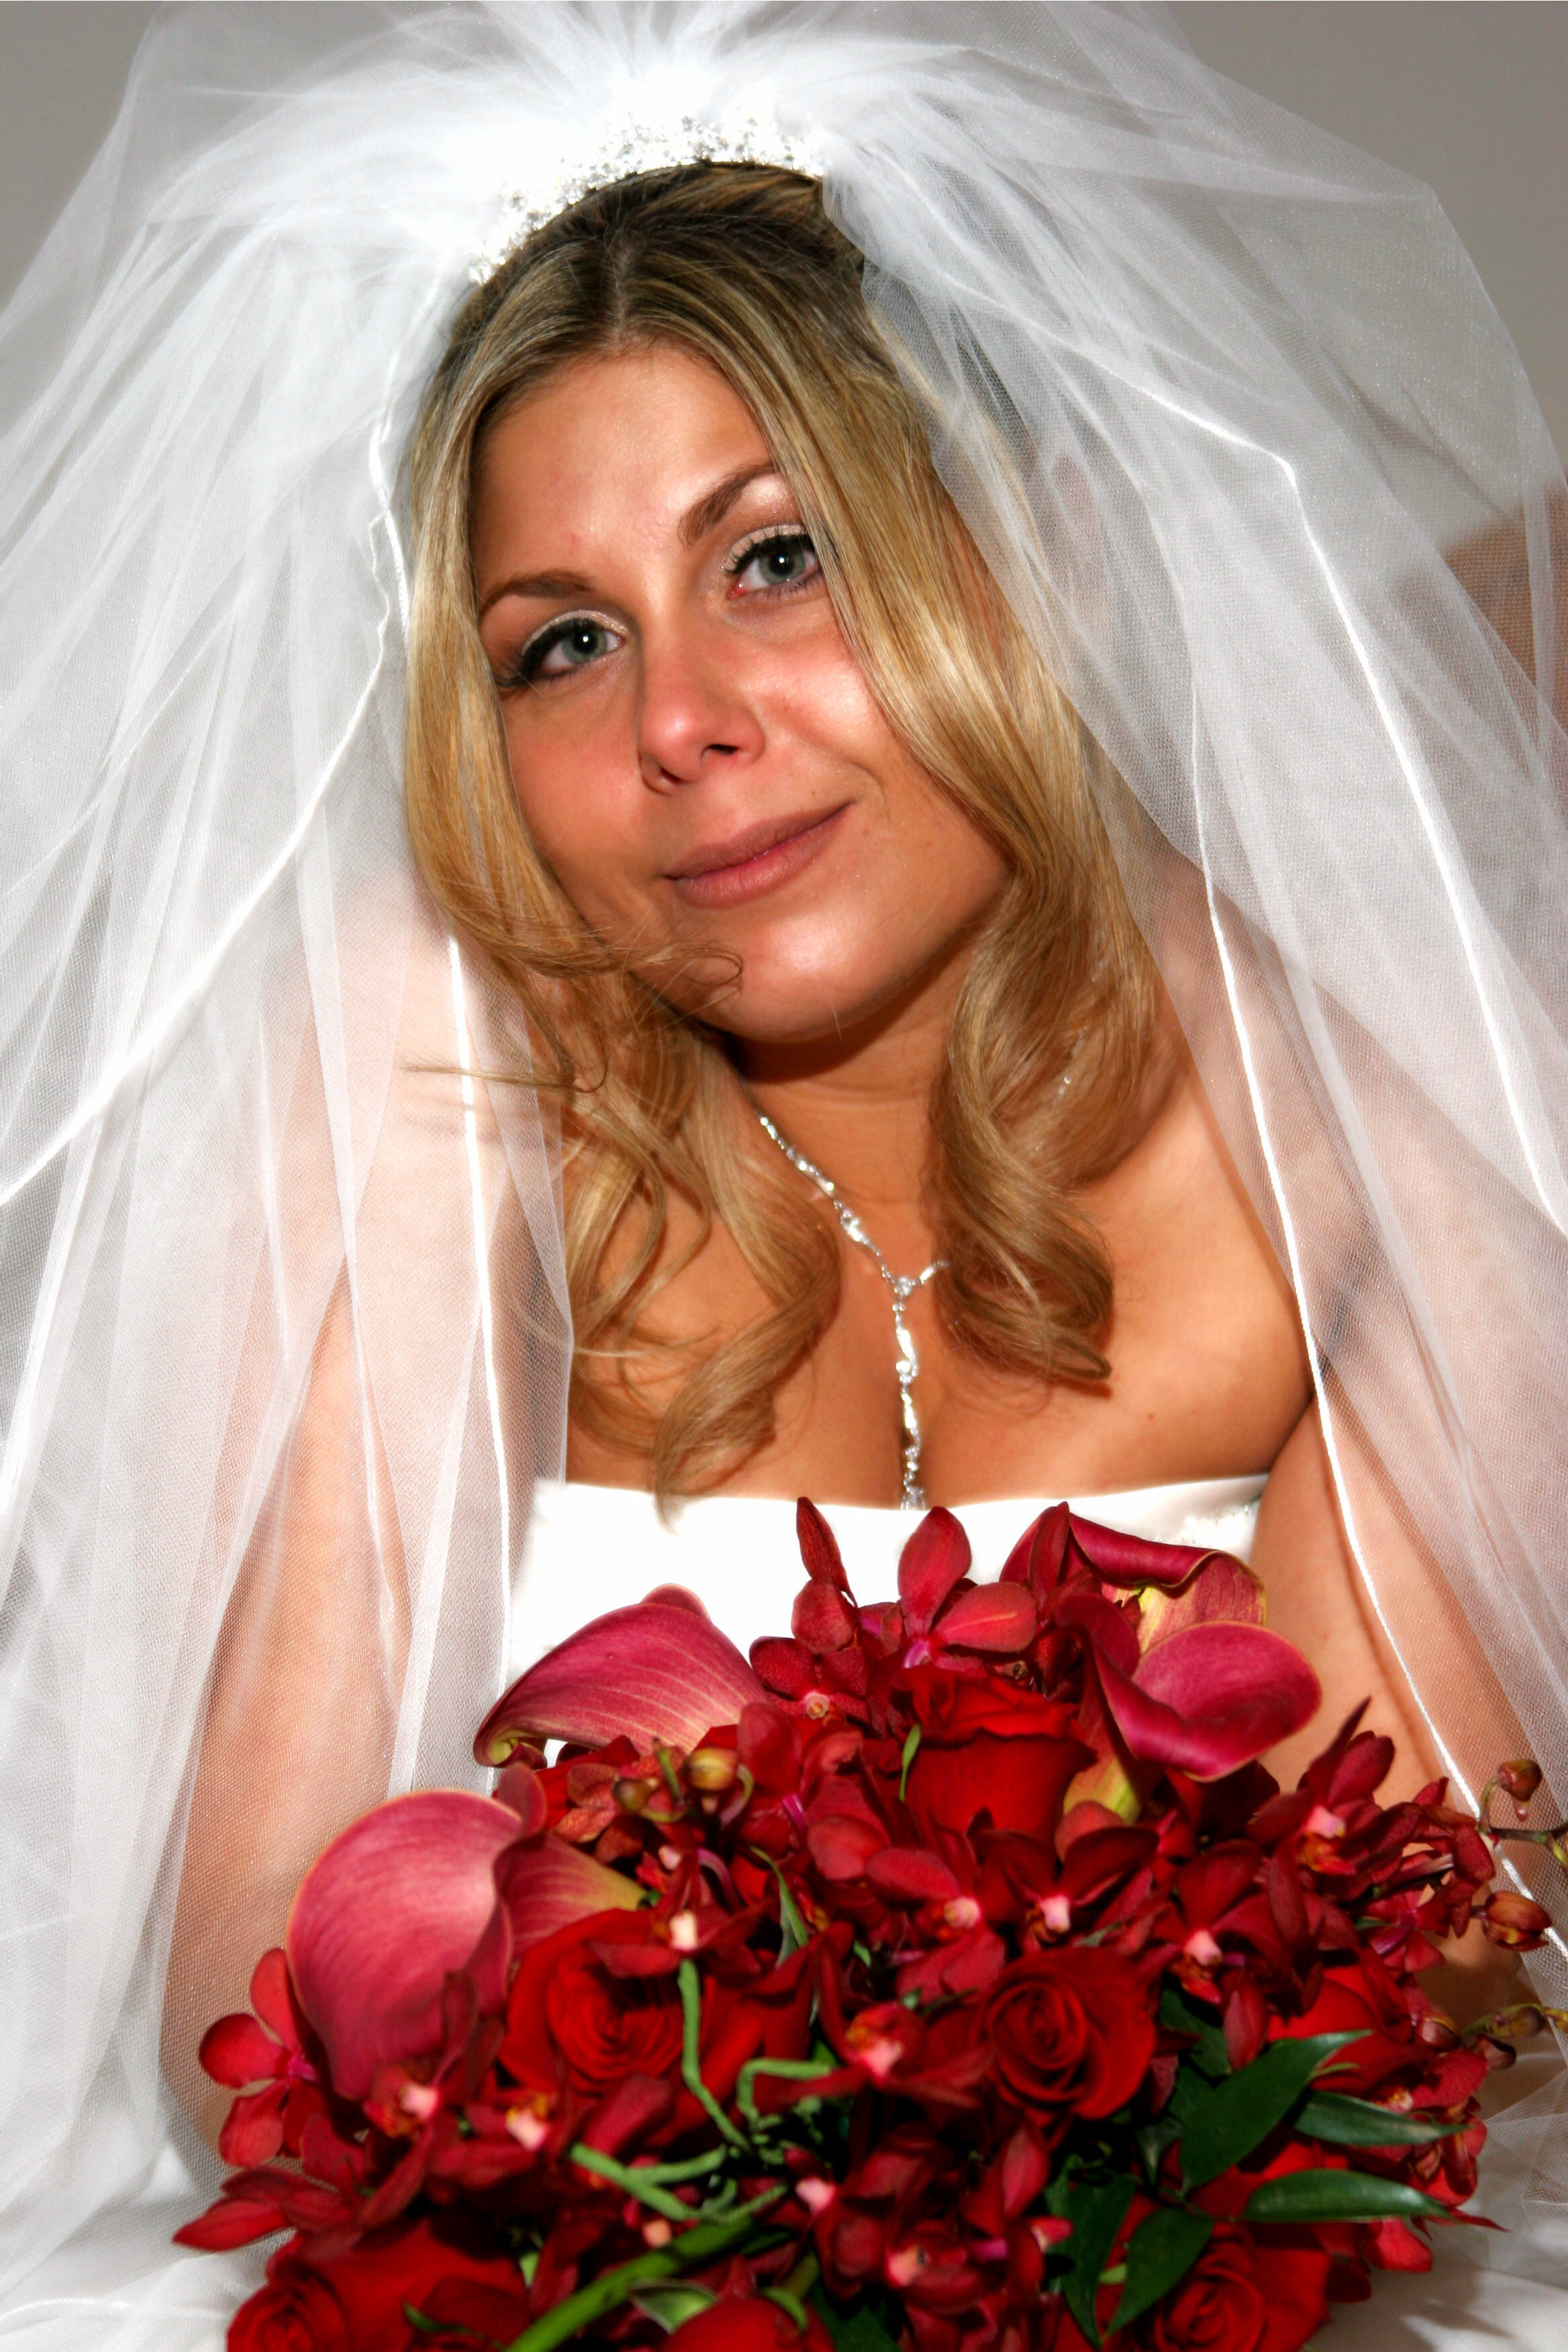 Beauty, red, Makeup, Wedding, Bridal, Artist, Dianna quagenti professional makeup artist